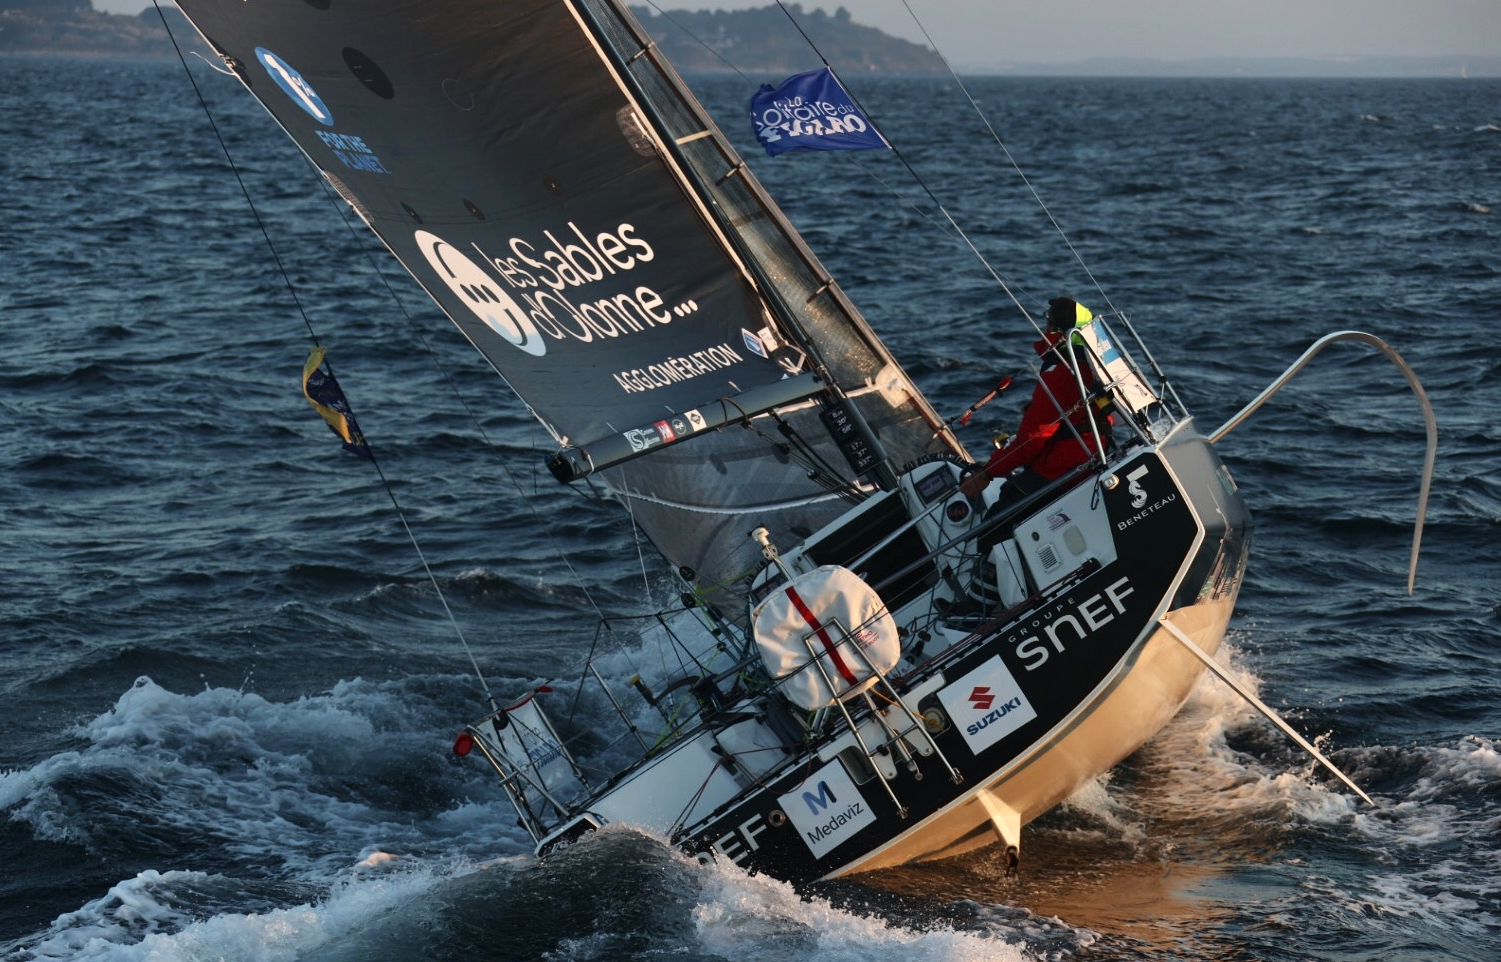 Xavier Macaire sailing Groupe SNEF.